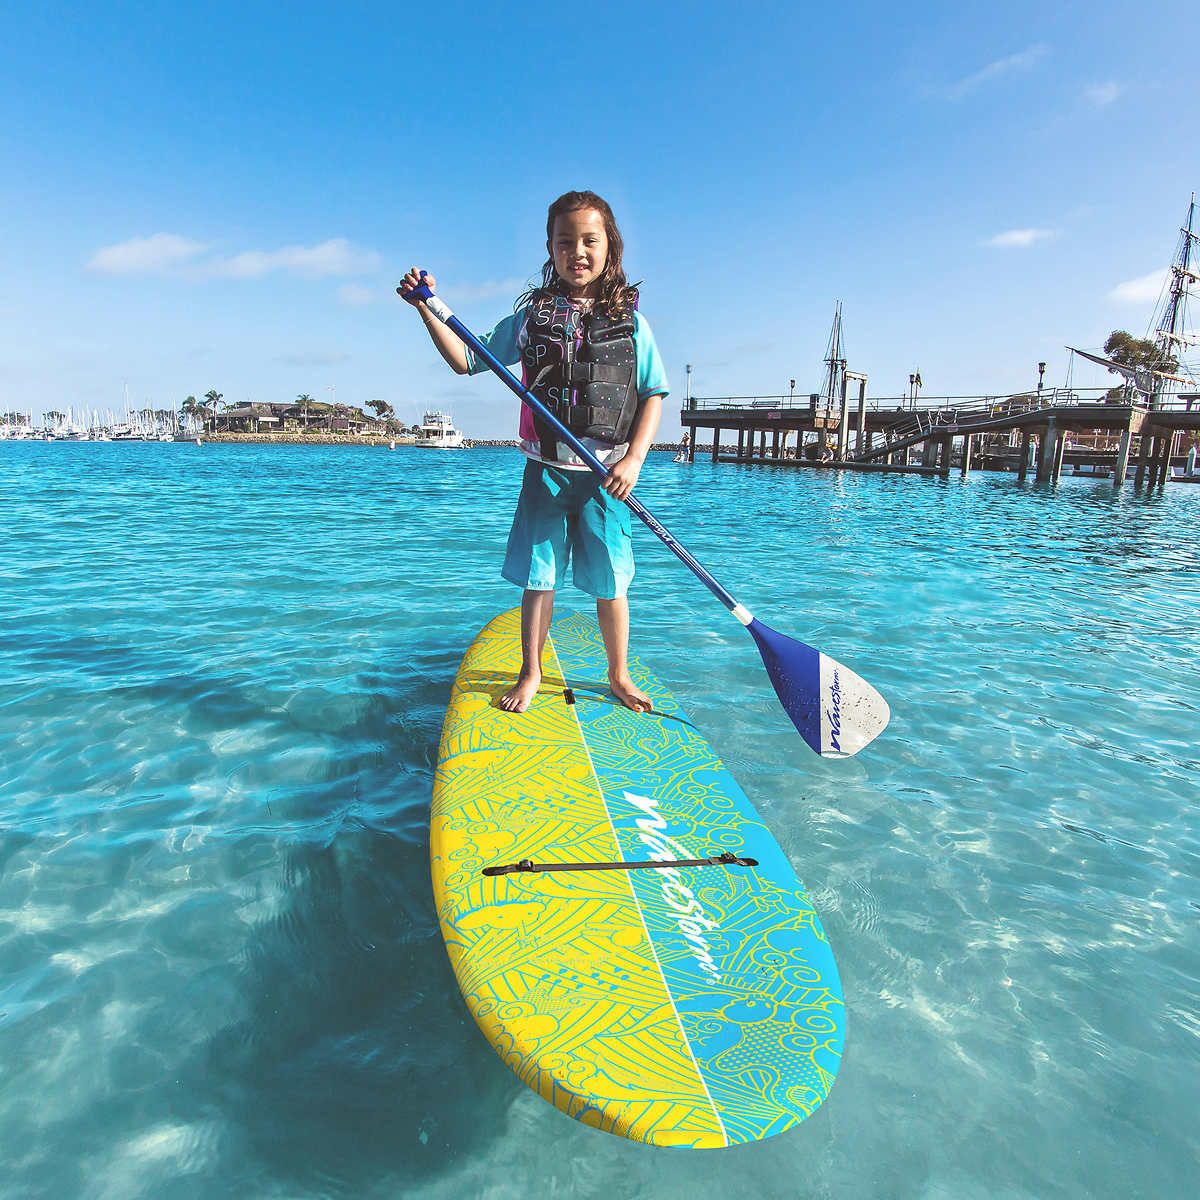 Pin By Melanie Mcintyre On Beach Paddle Boarding Sup Accessories Kayak Paddle